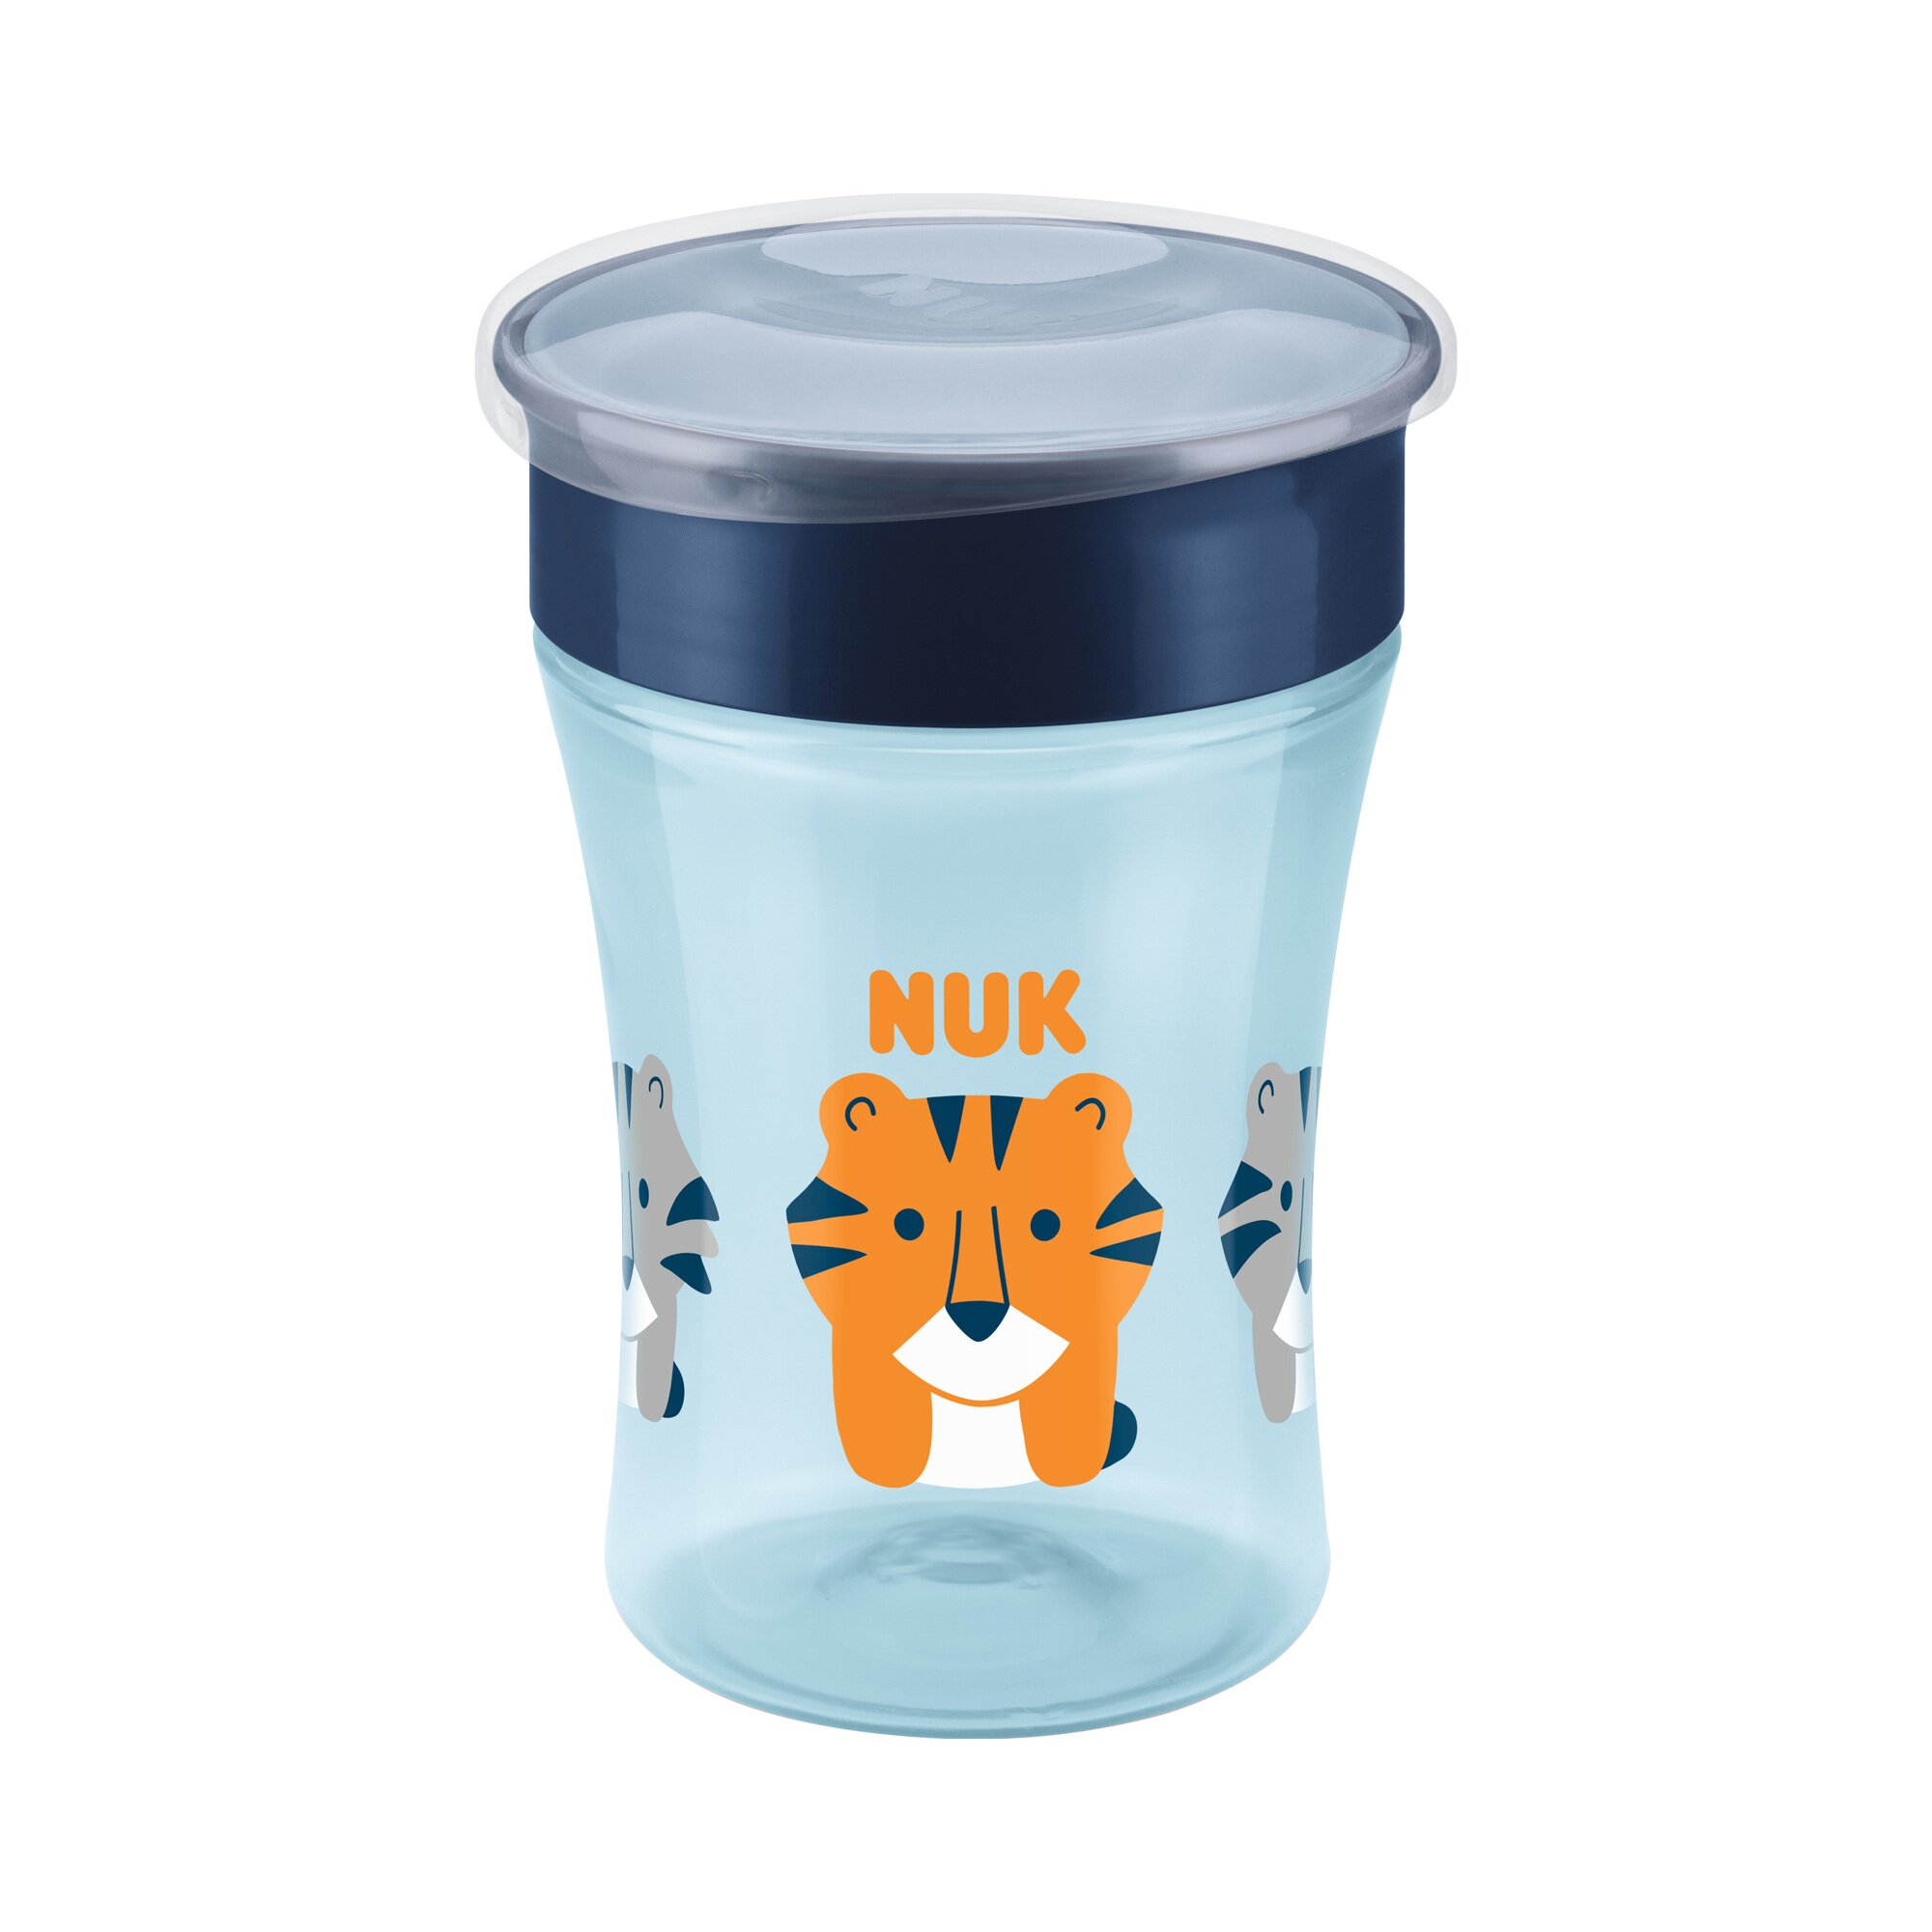 nuk-trinklernbecher-magic-cup-230-ml